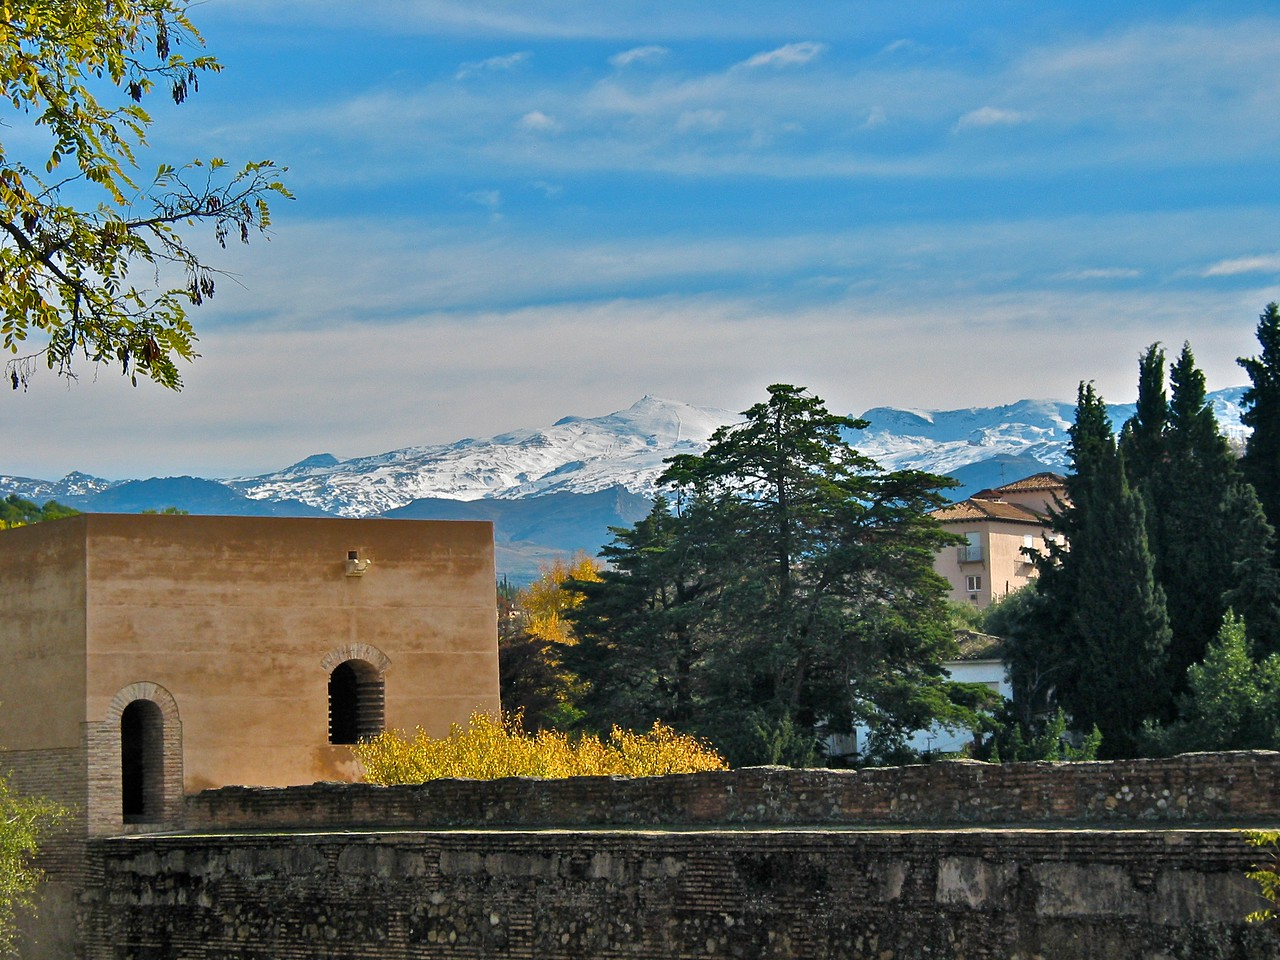 A great view of the Sierra Nevada from the Alhambra.